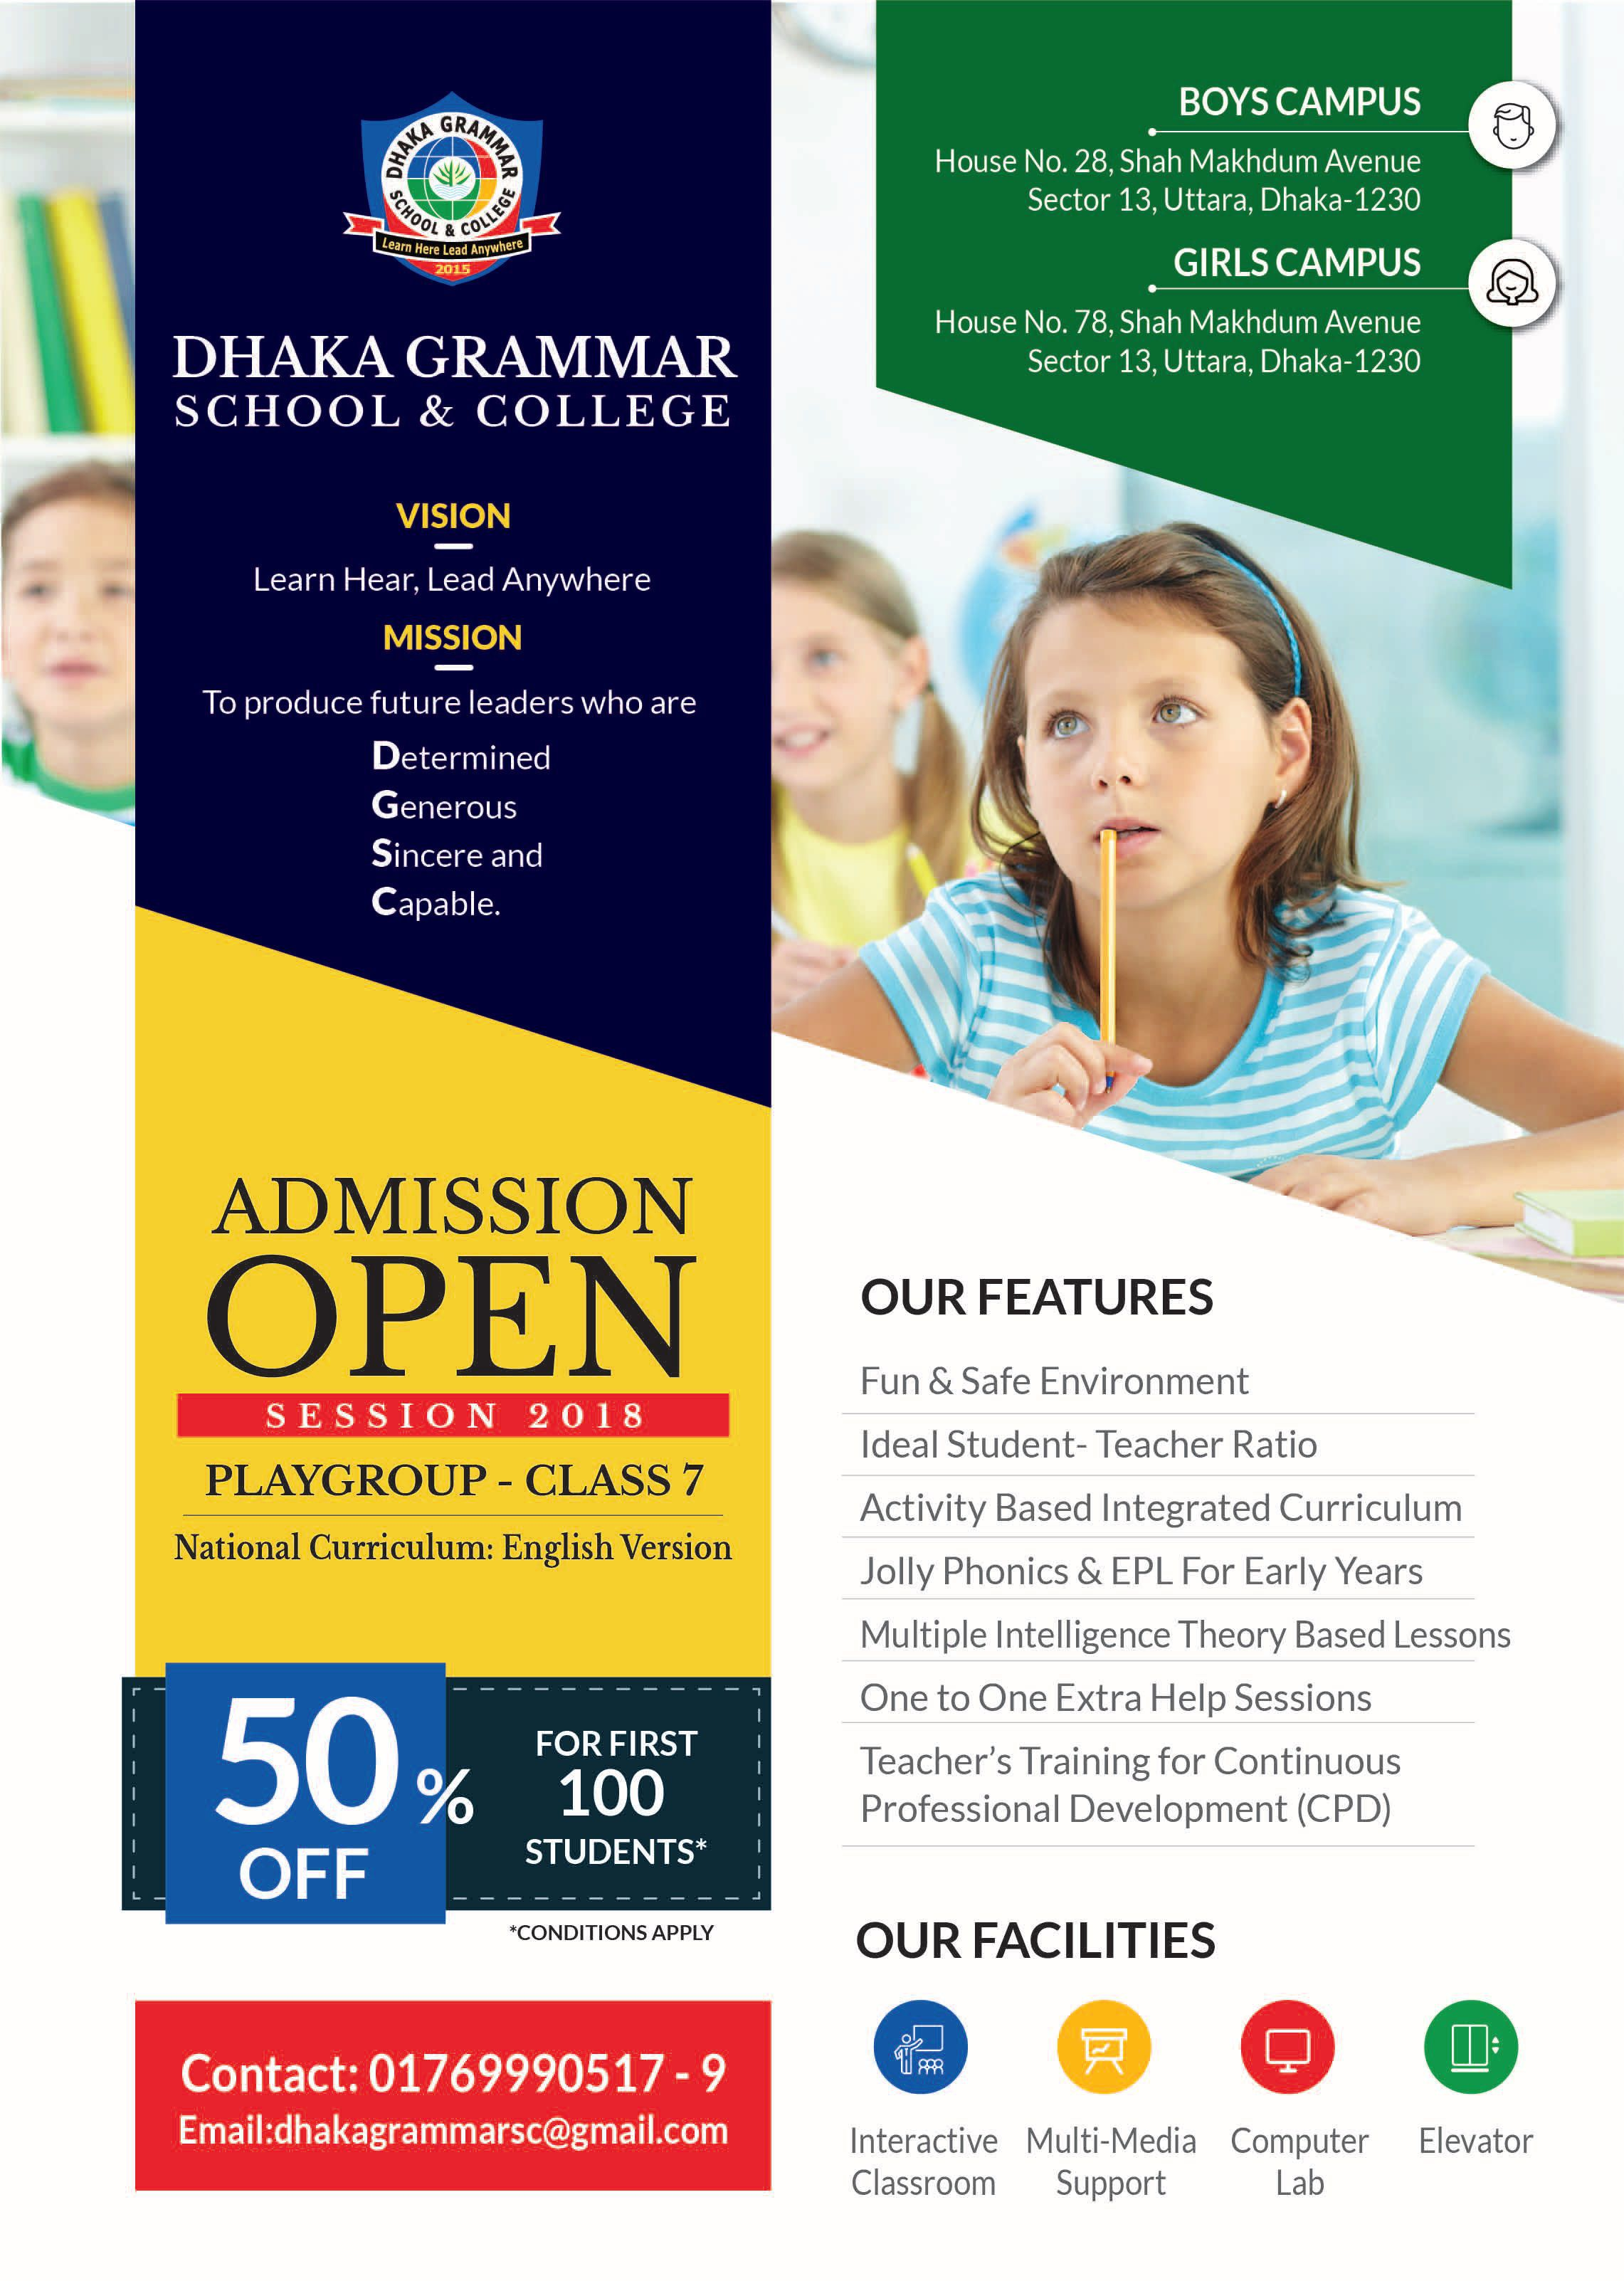 001 Outstanding School Open House Flyer Template Highest Clarity  Elementary Free WordFull